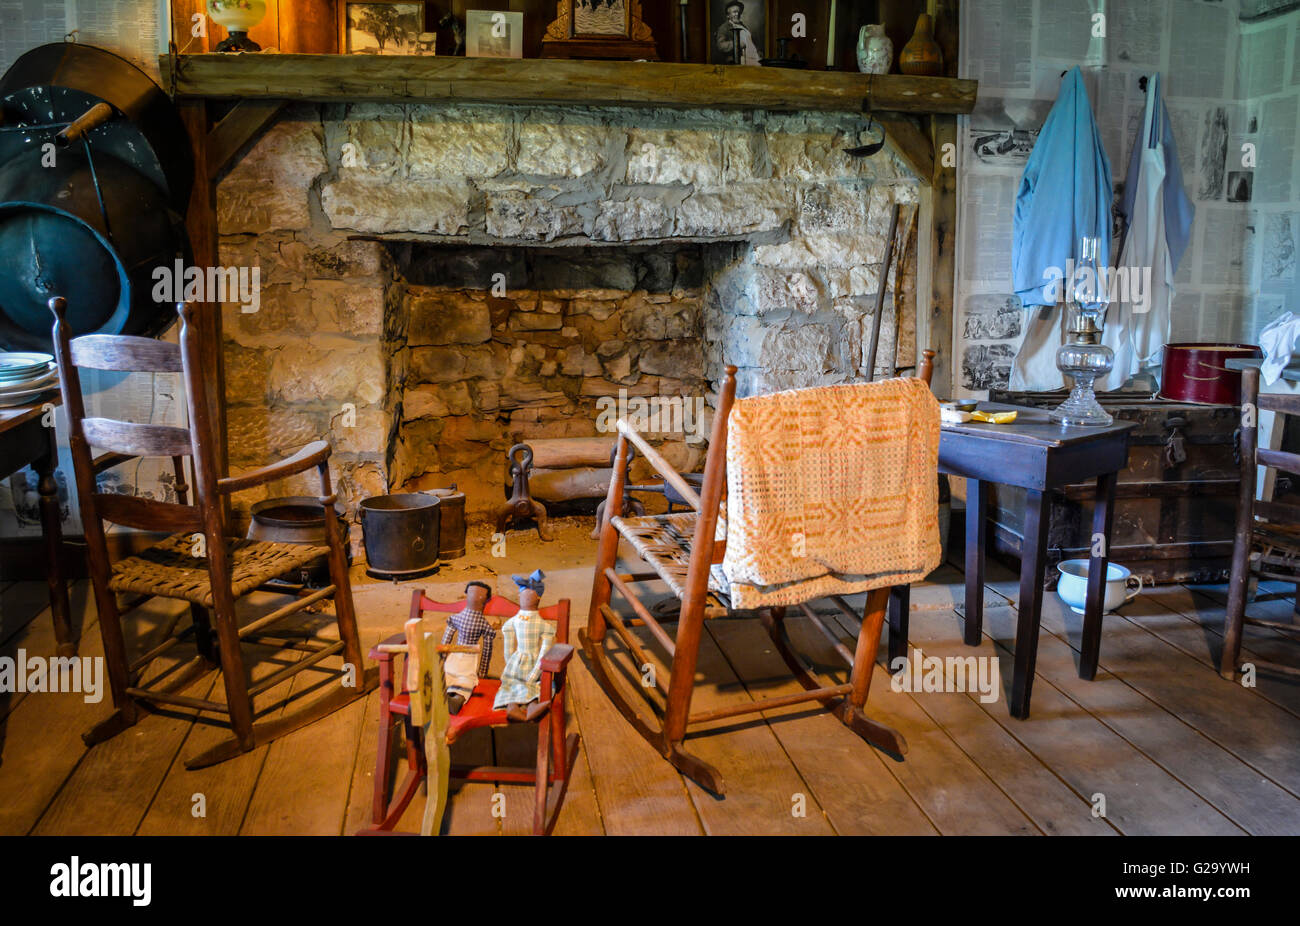 An Interior view of a rustically furnished log cabin with